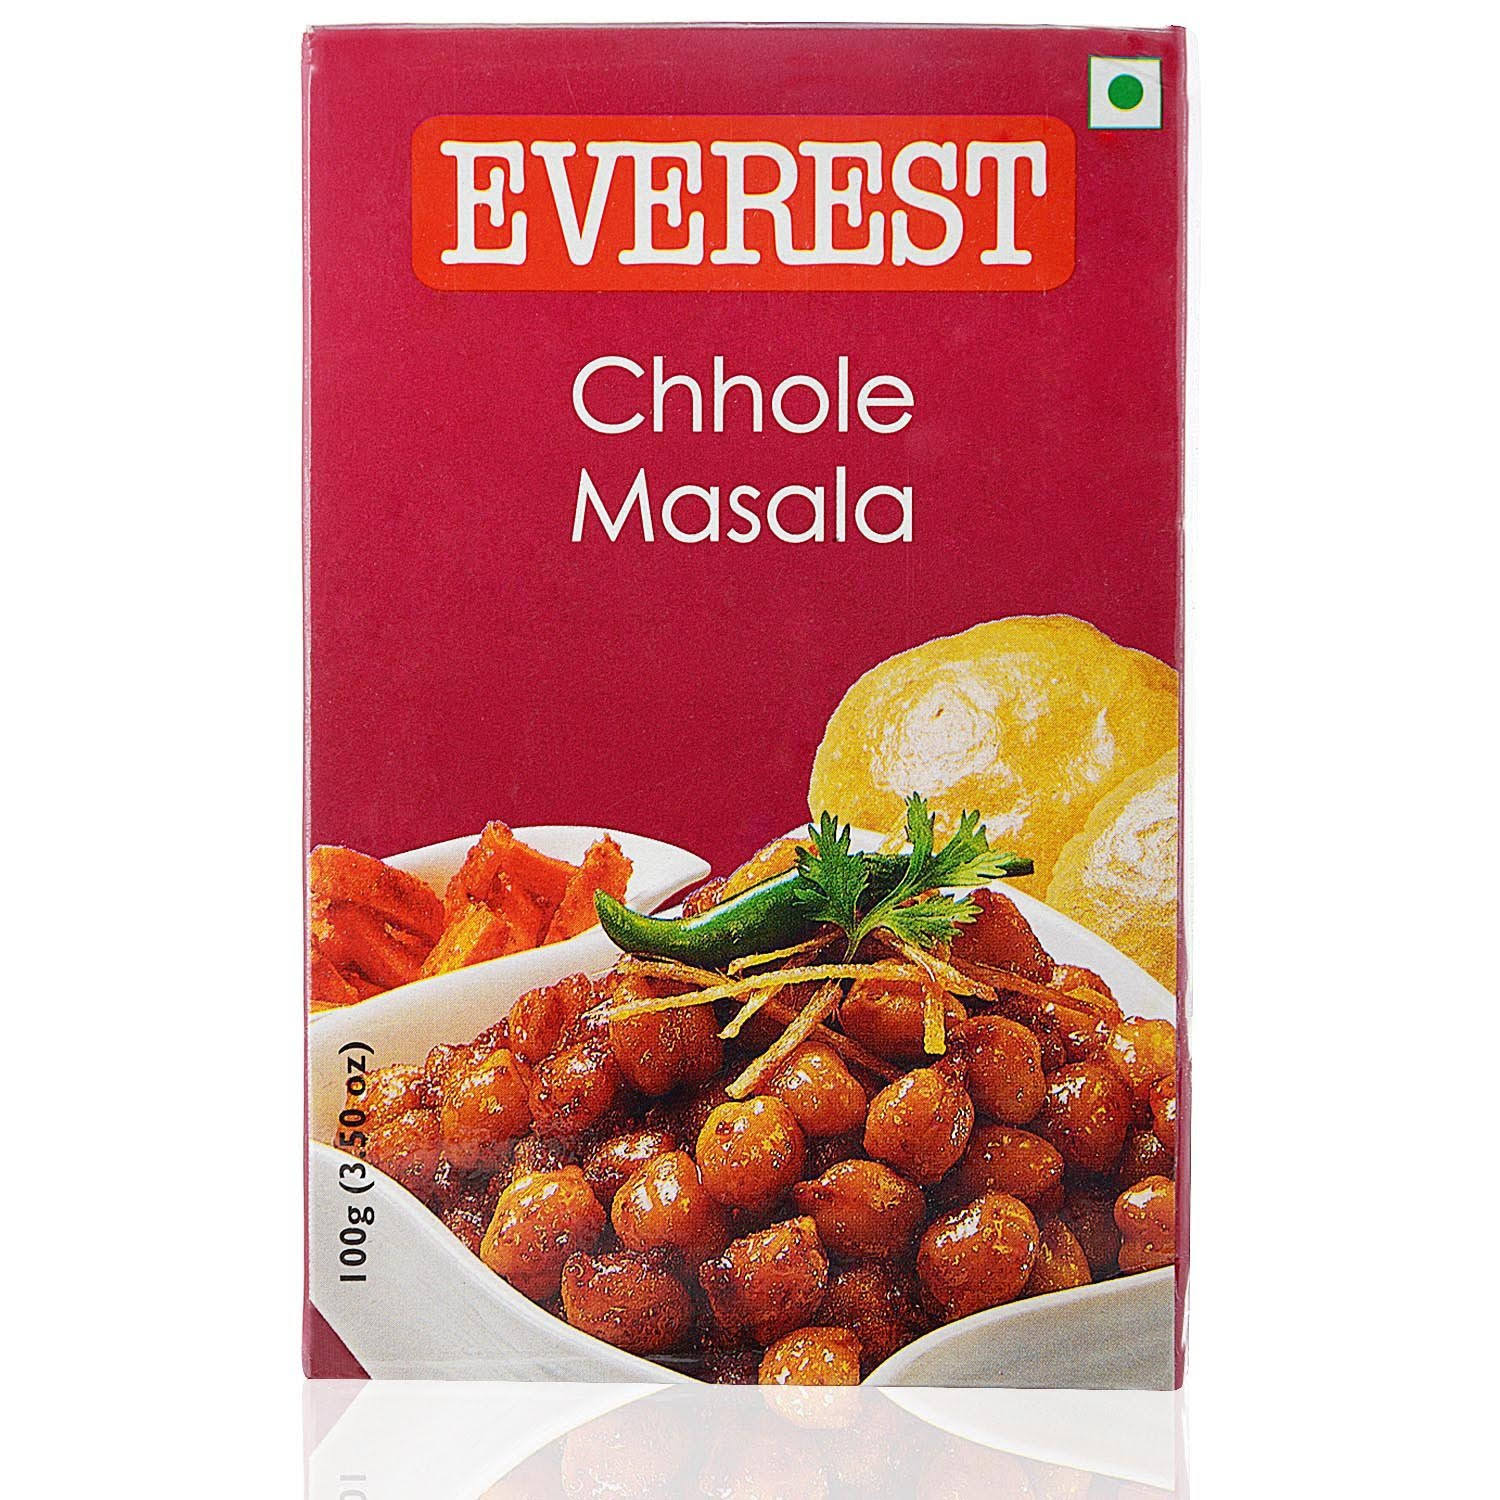 Everest Chhole Masala - 100g